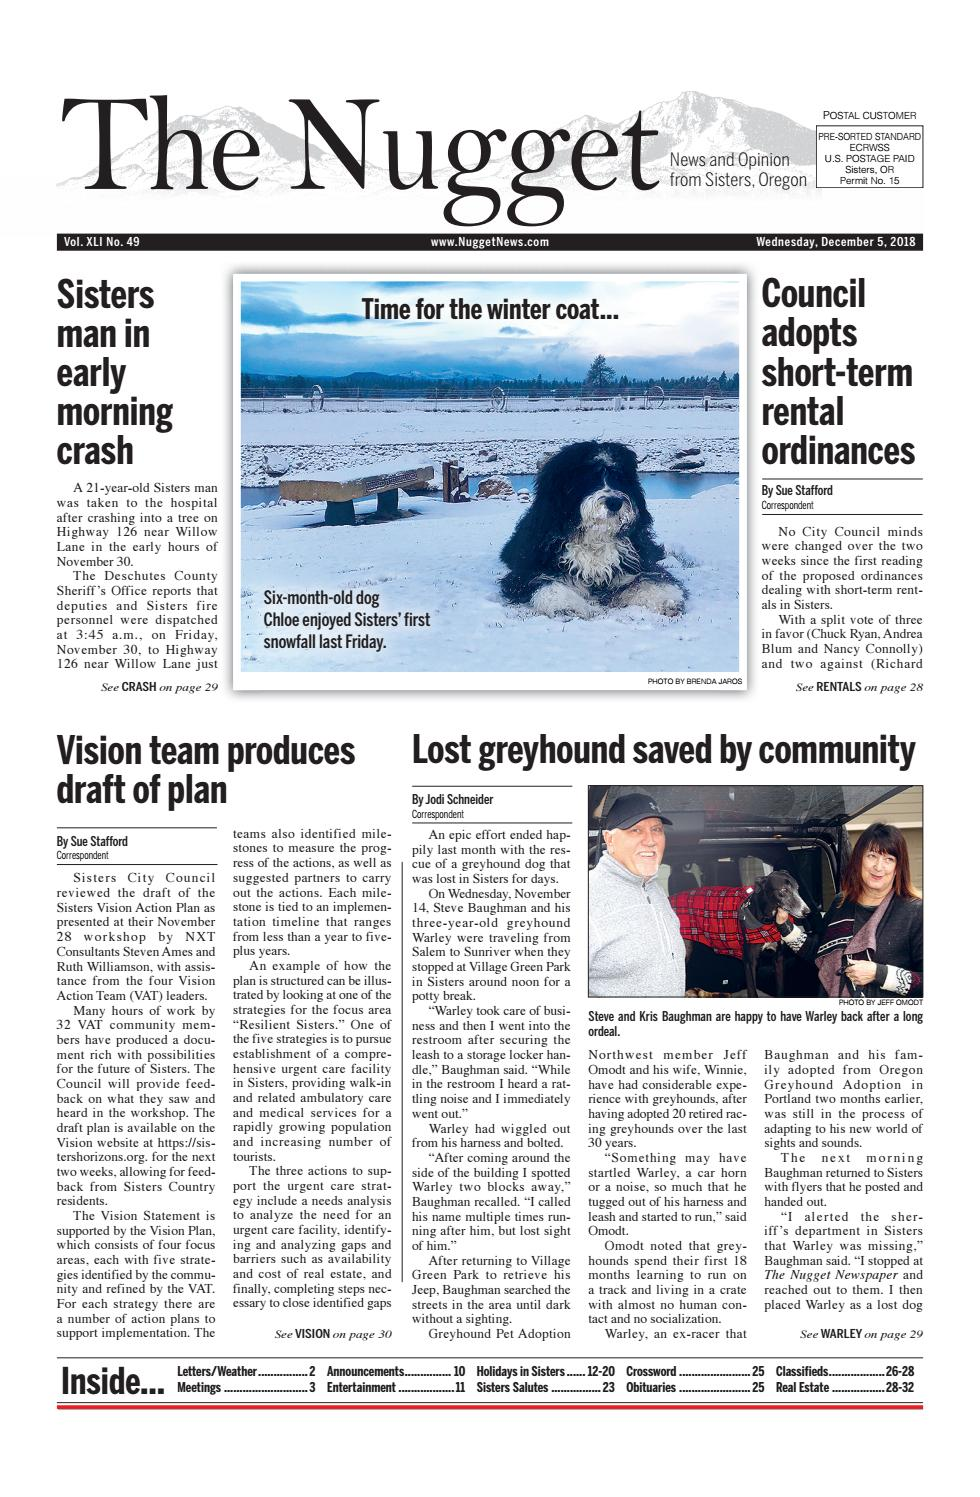 The Nugget Newspaper // Vol  XL No  49 // 2018-12-05 by